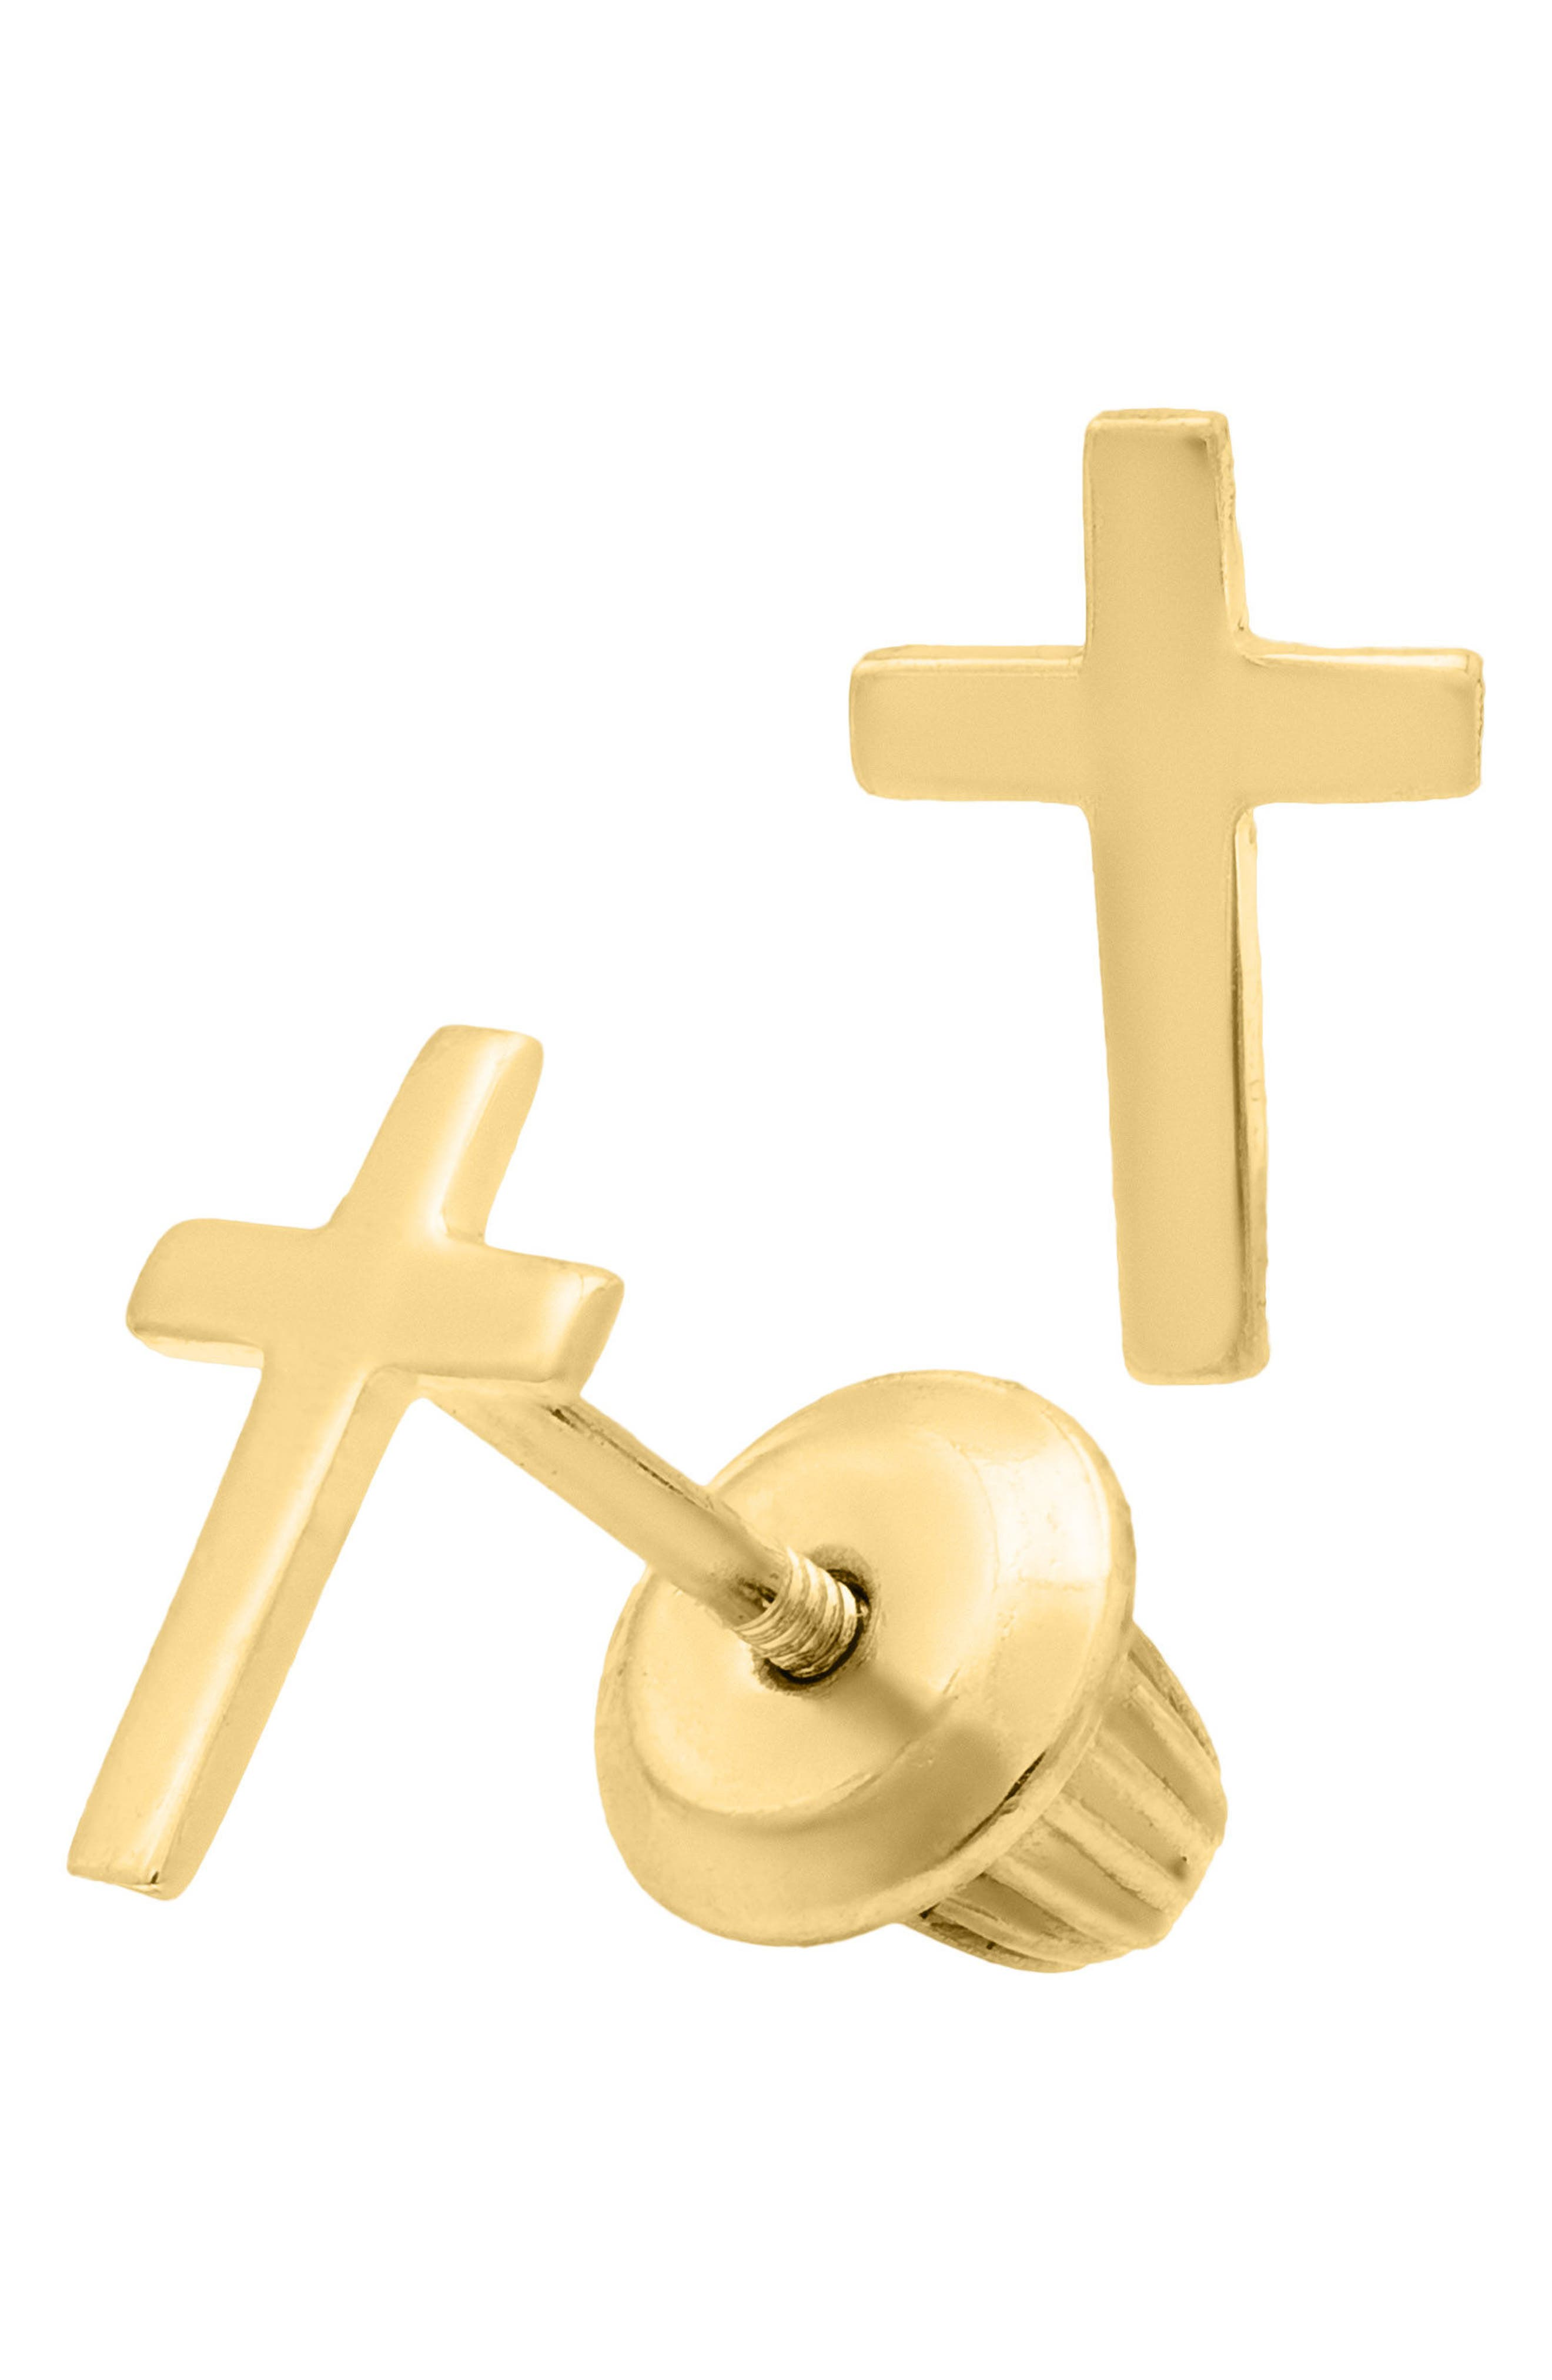 14k Gold Cross Stud Earrings,                             Main thumbnail 1, color,                             Gold